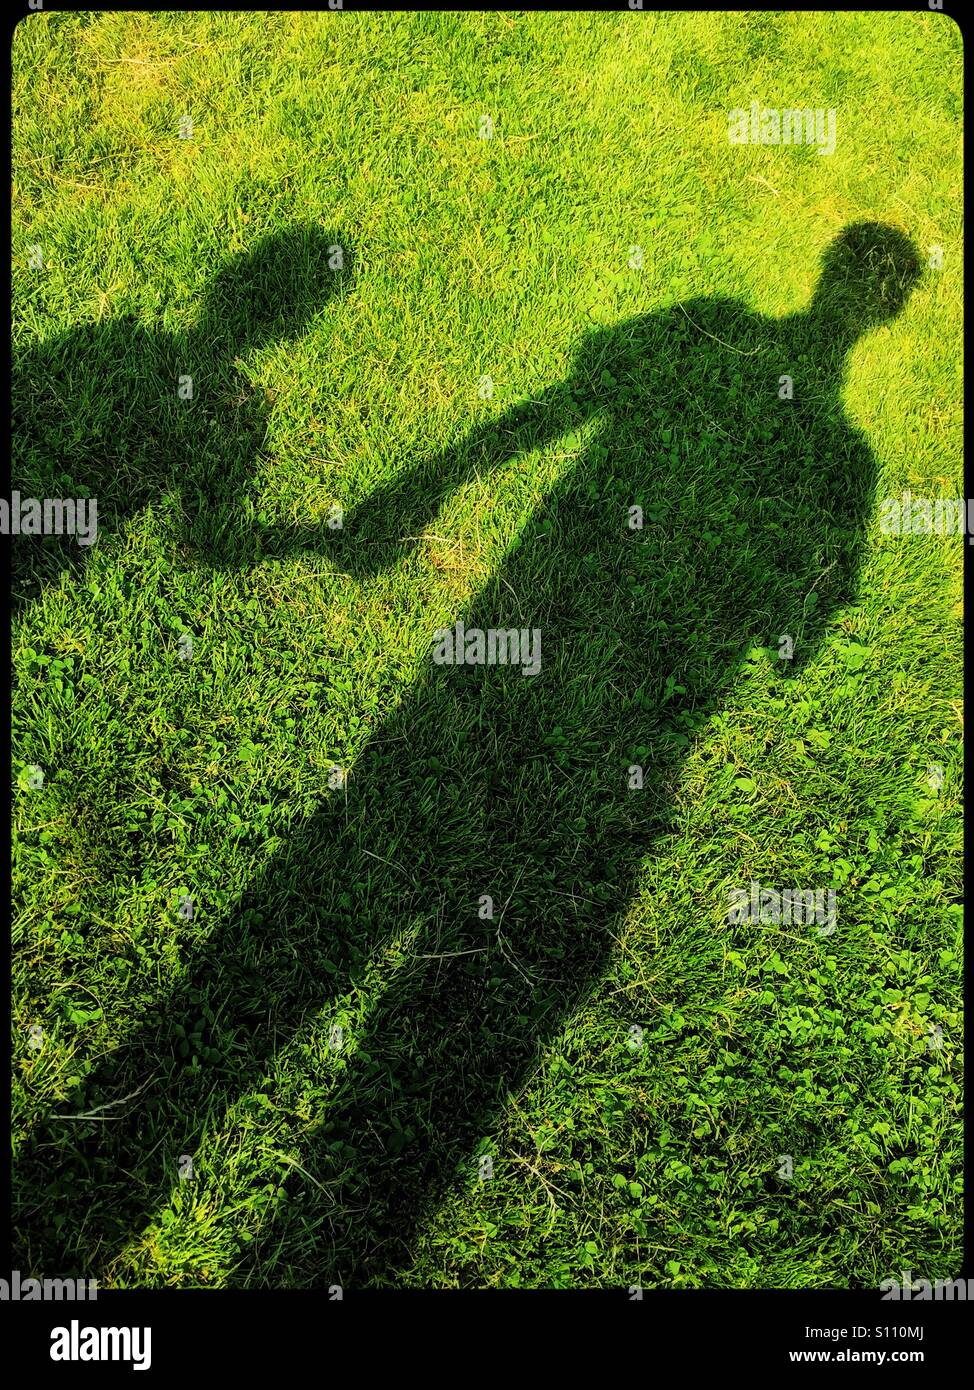 Shadows on the grass of a man and a boy, both holding hands. Is it Father and Son happy together OR is a Paedophile - Stock Image